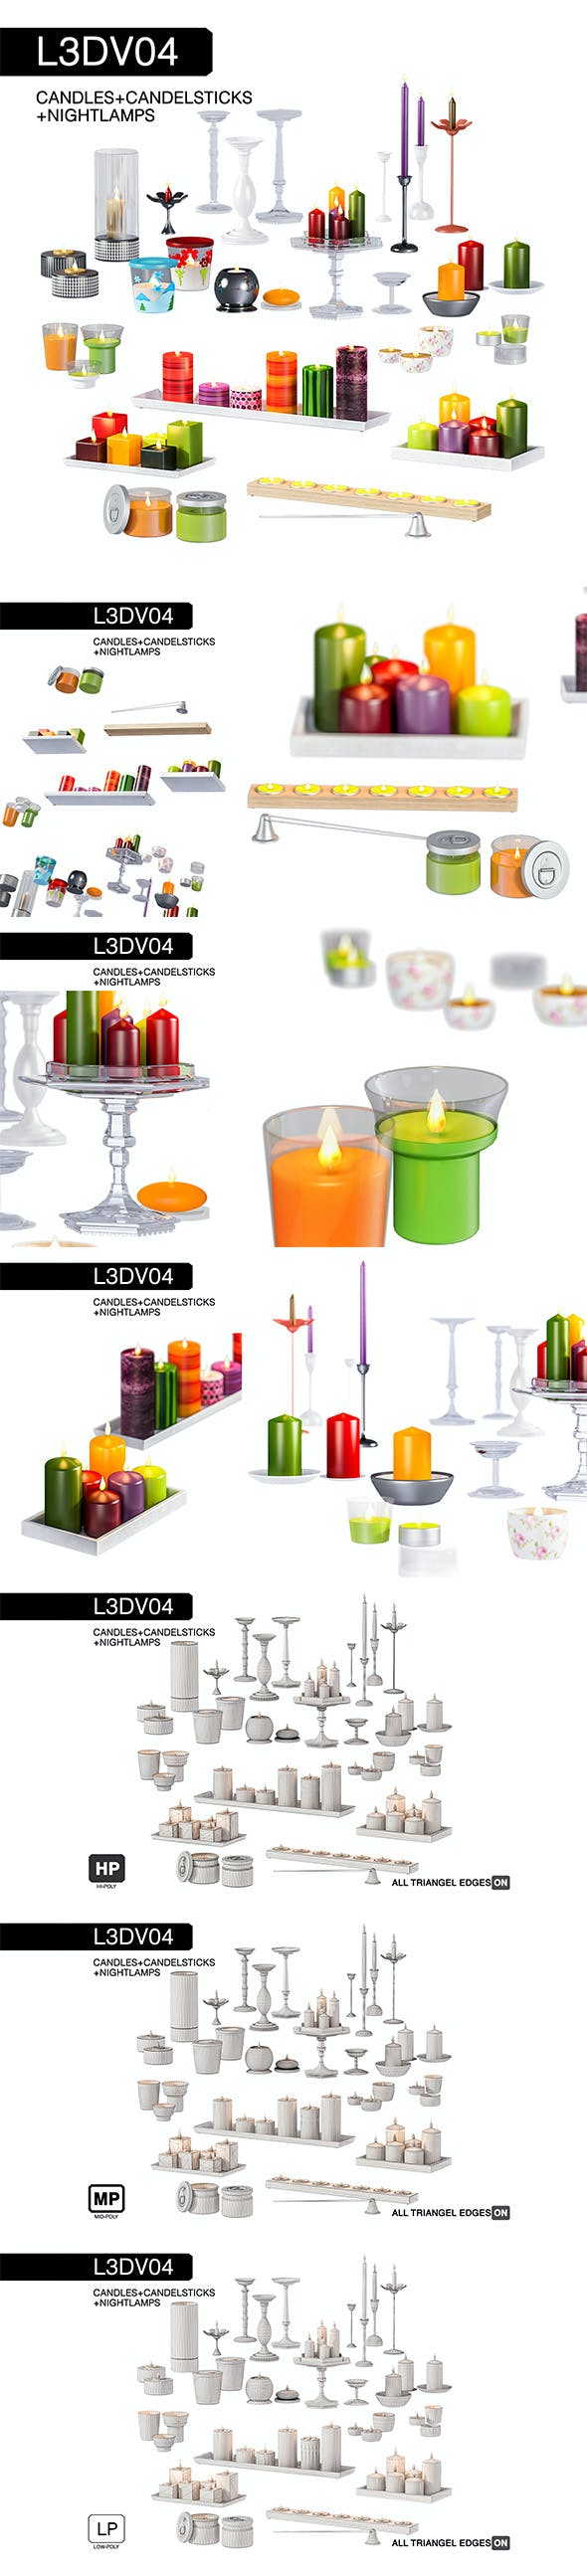 L3DV04G01 - candles and candlesticks set with 3 polygonal levels - 3DOcean Item for Sale